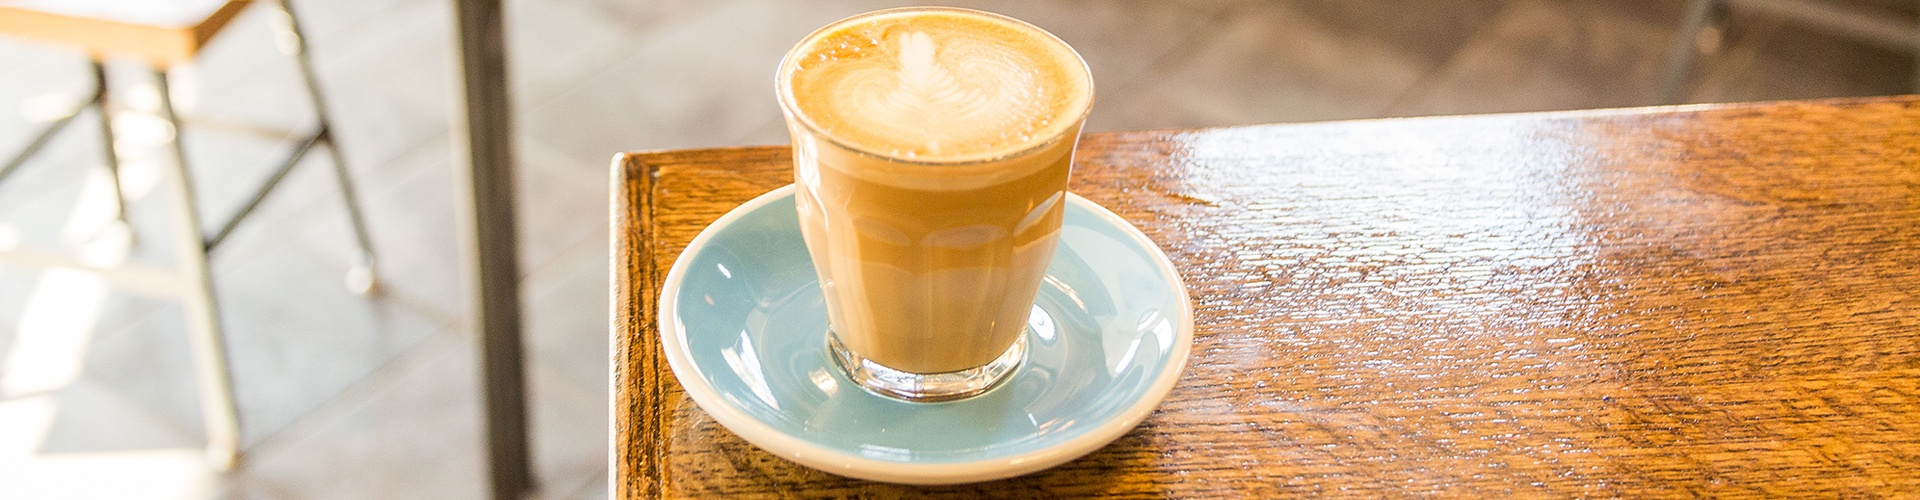 Best Coffee Shops in the New York Area